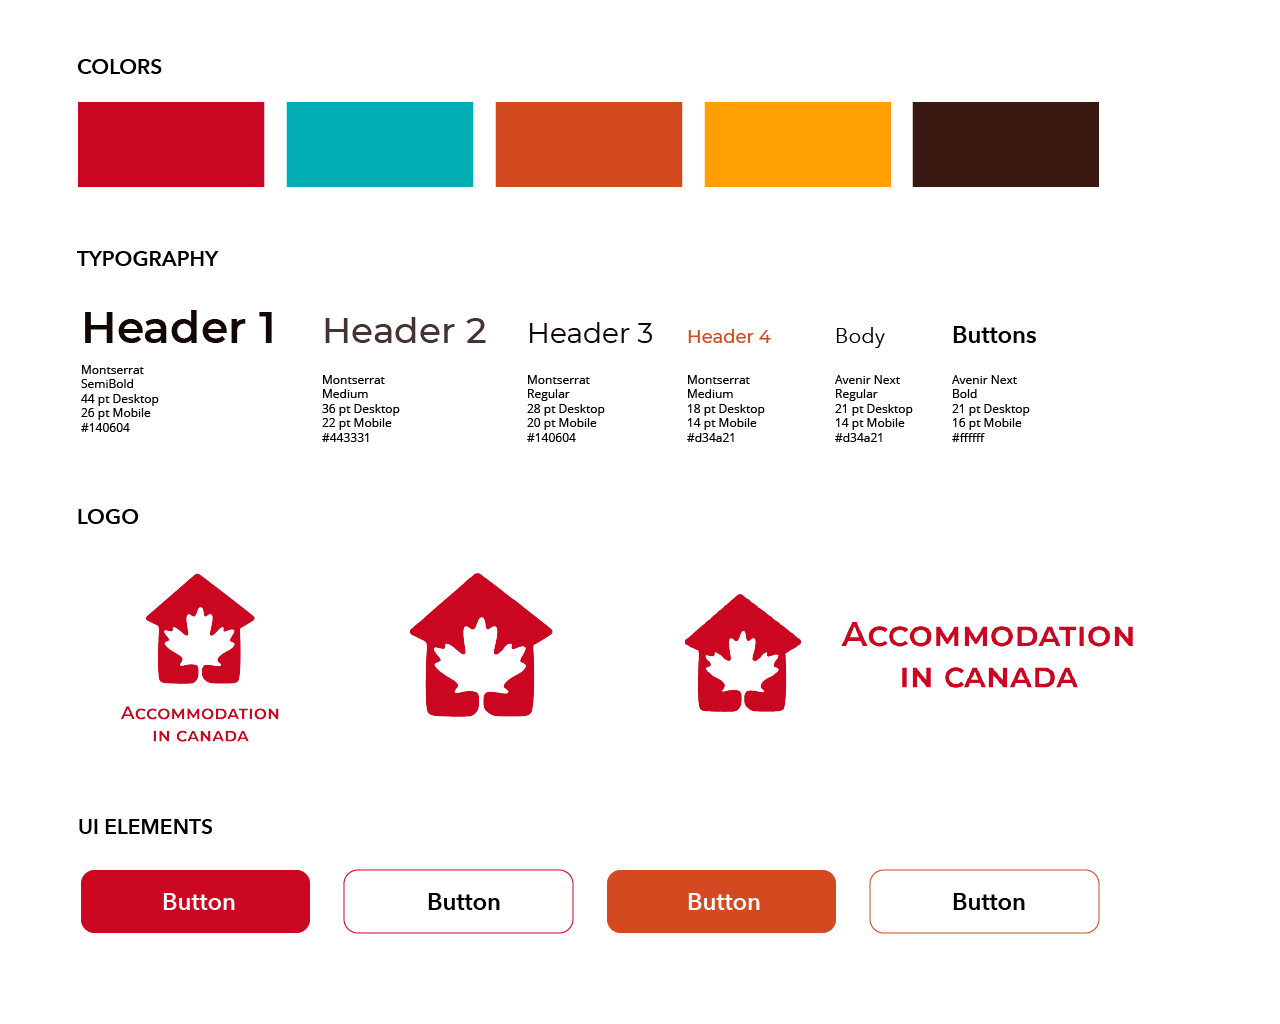 Accommodation in Canada — A UX/UI Case Study - UX Planet